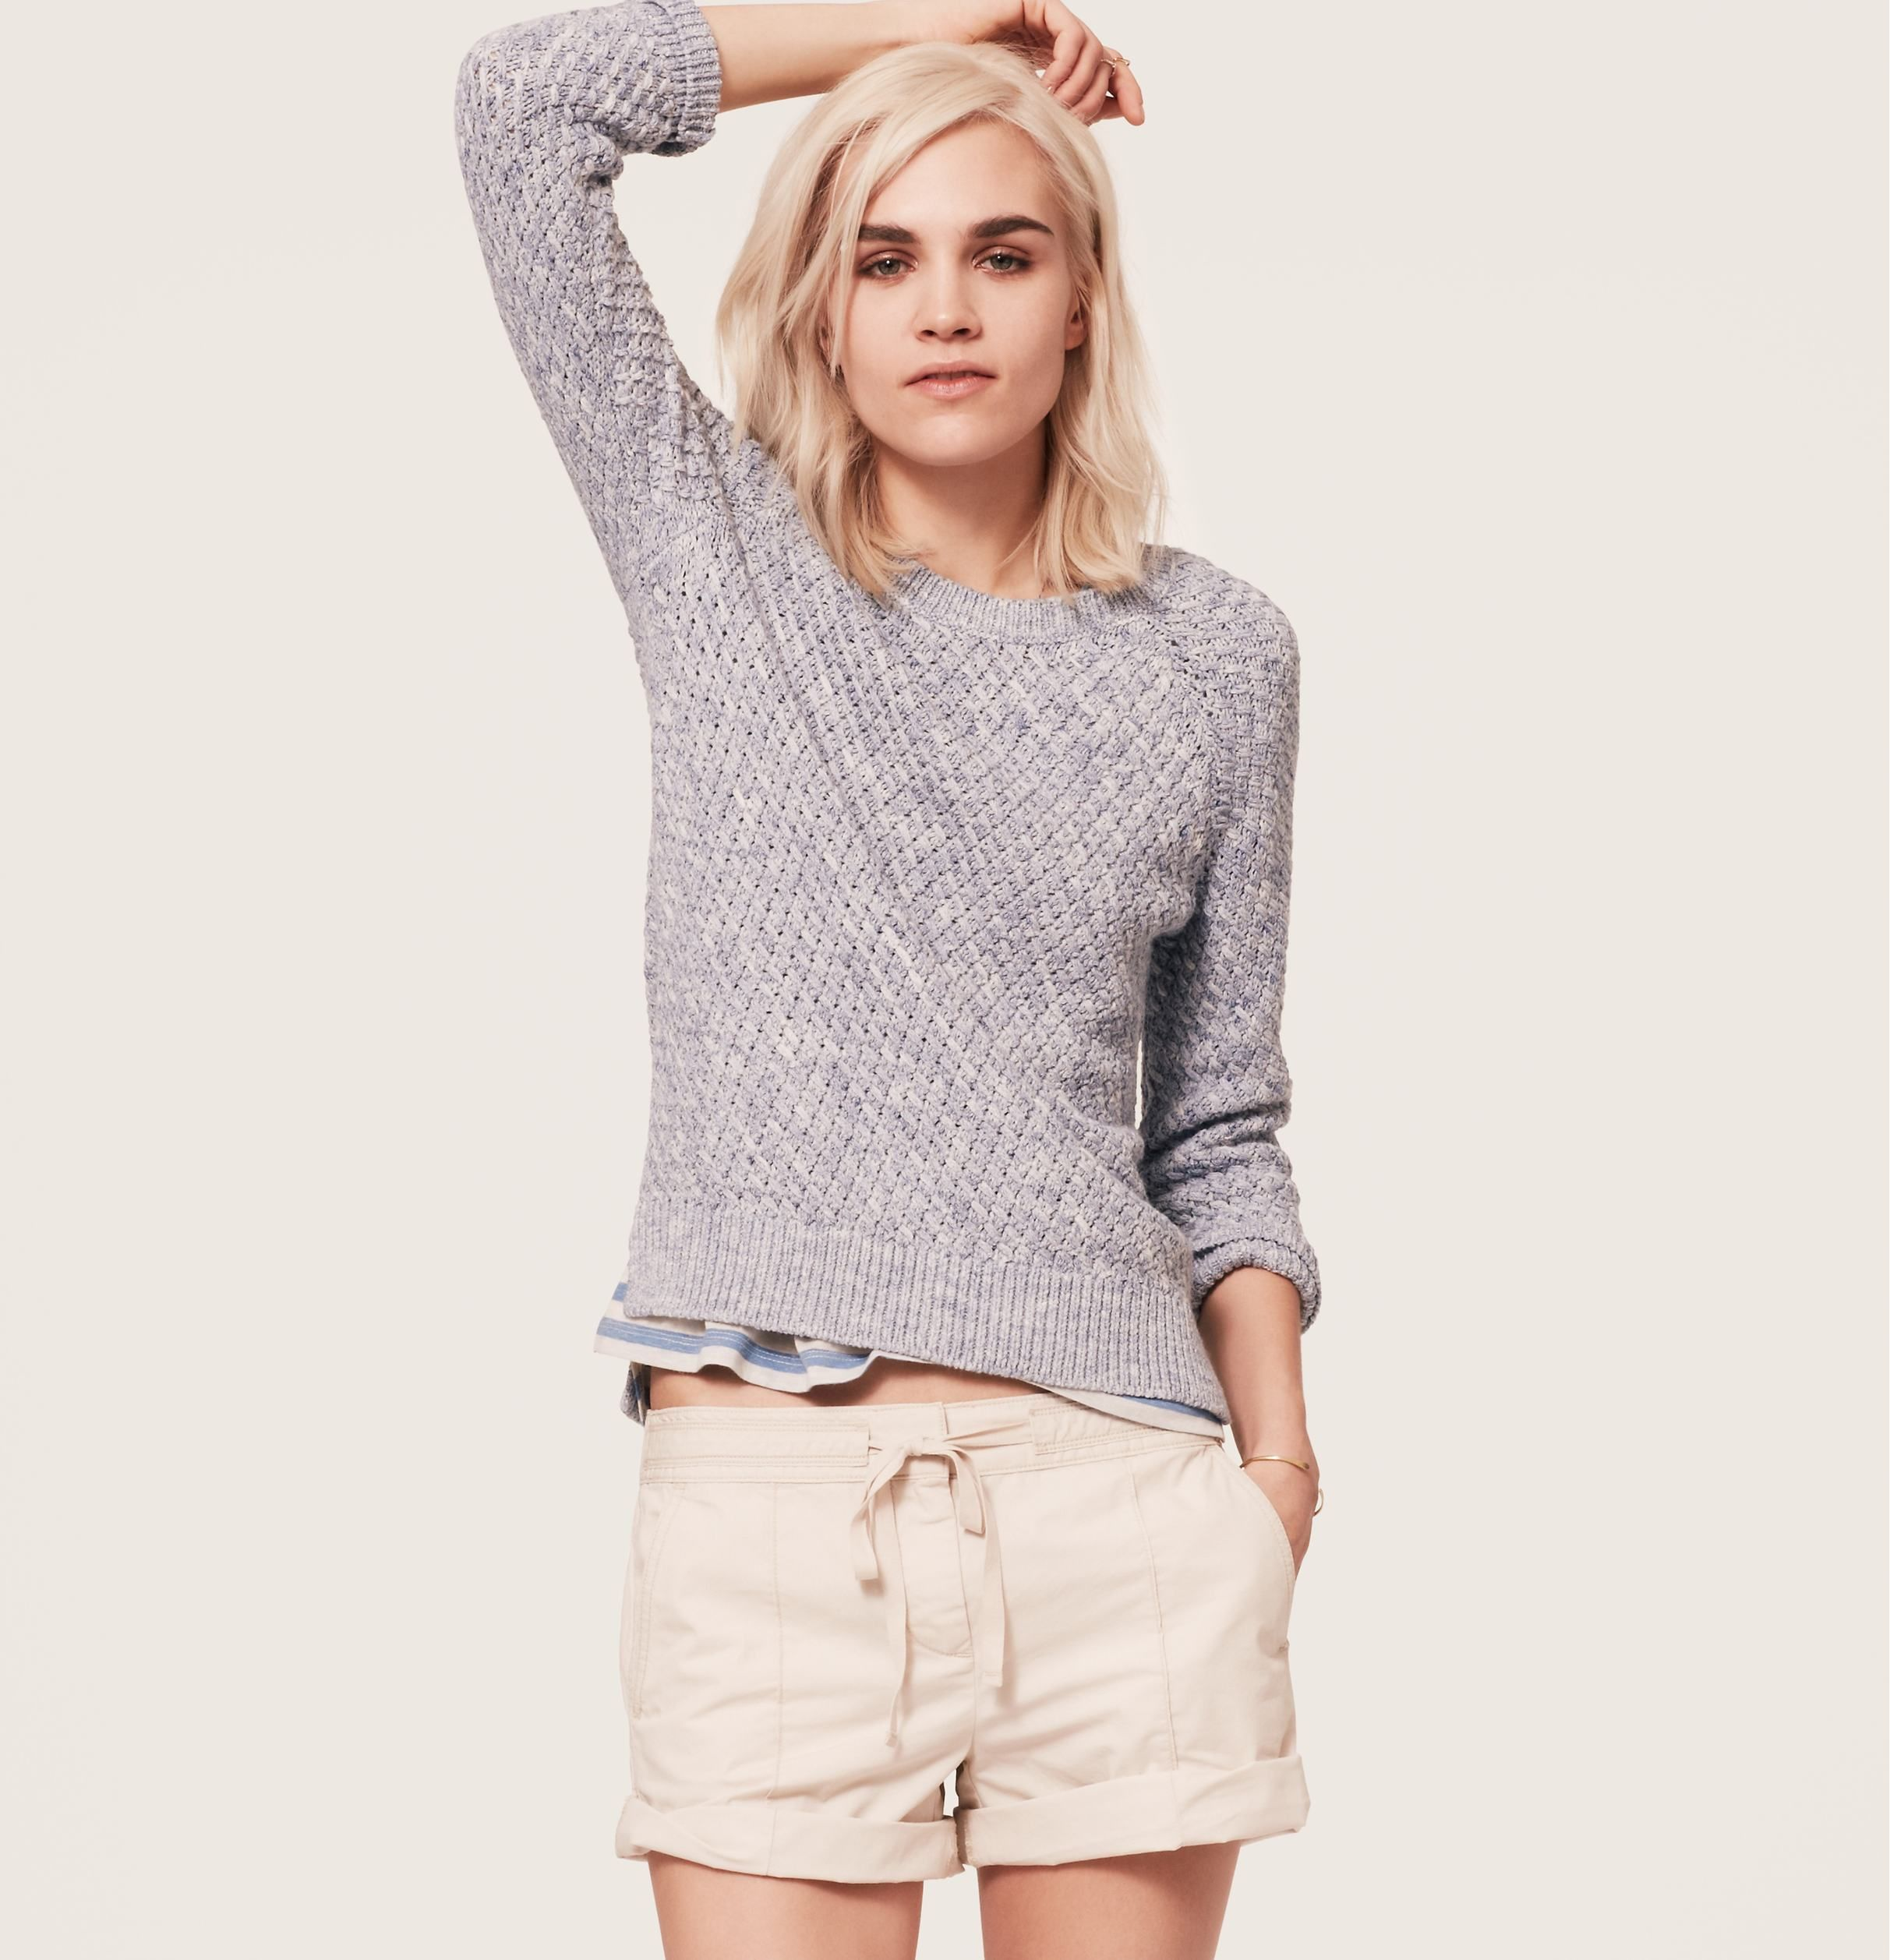 5f8218099cdab Lou & Grey Stitchy Sweater   Loft   Why's she standing like that ...